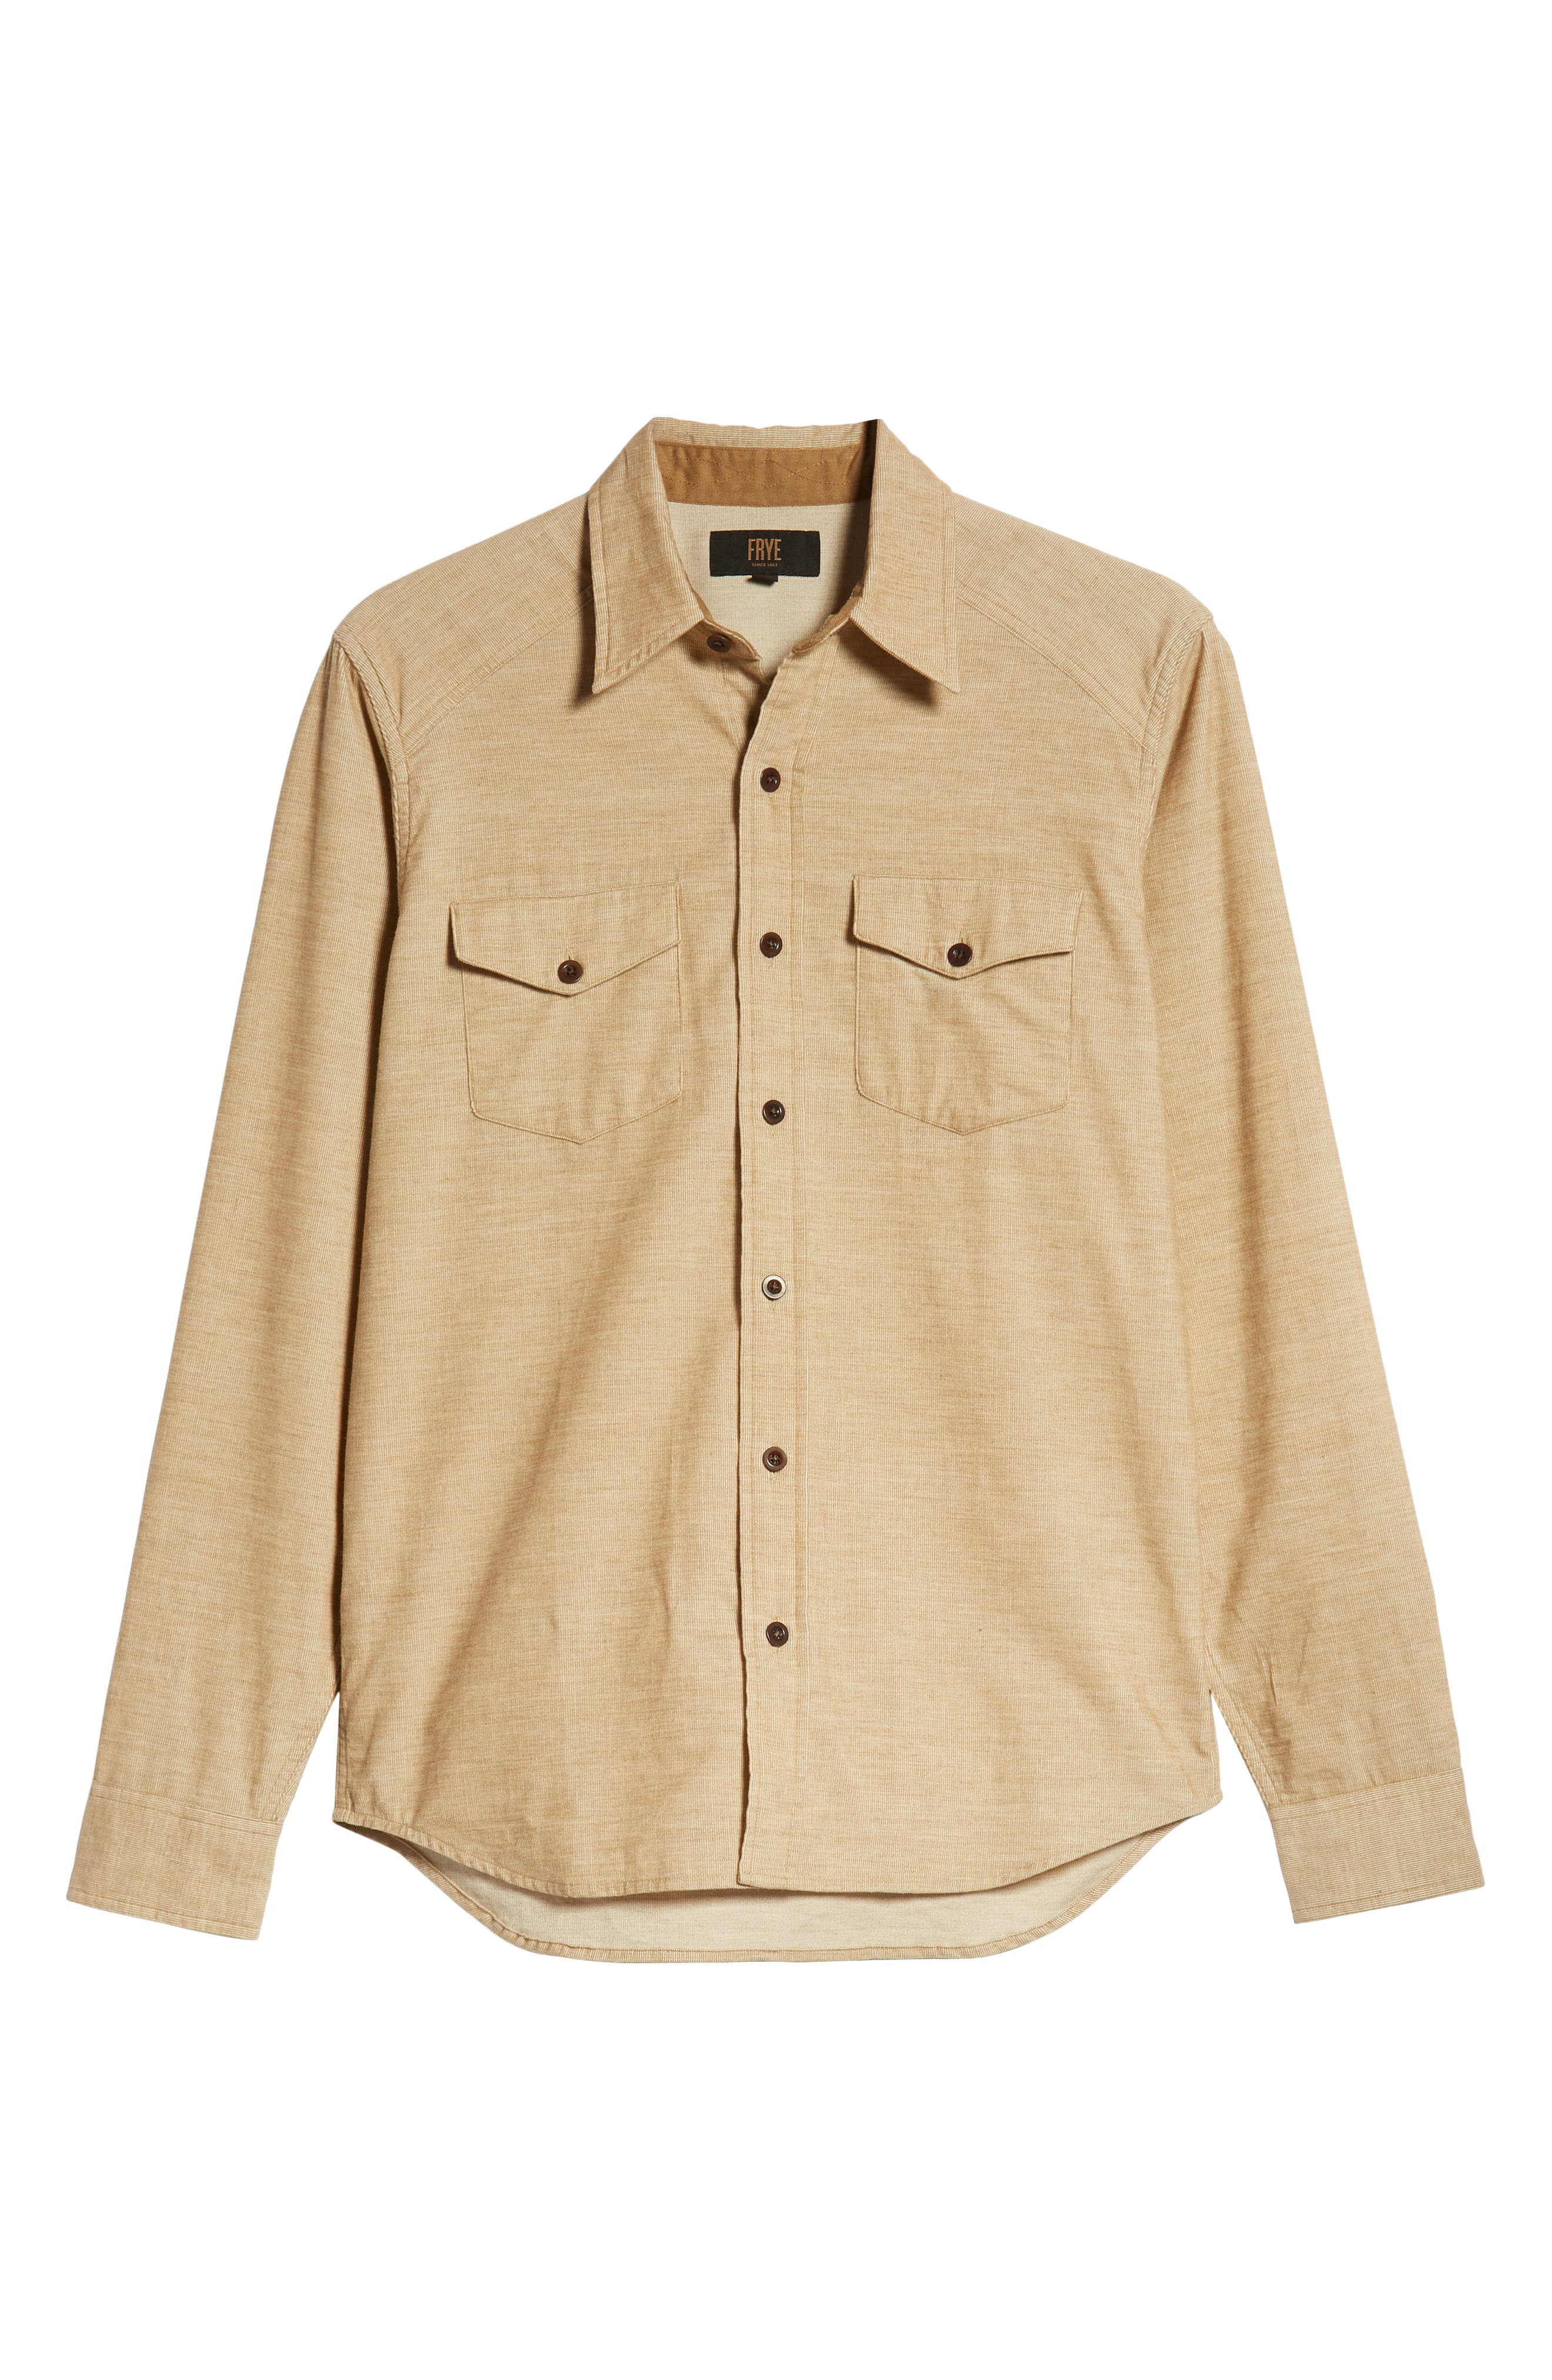 John Addison Engineer Shirt,                             Alternate thumbnail 5, color,                             KHAKI HEATHER